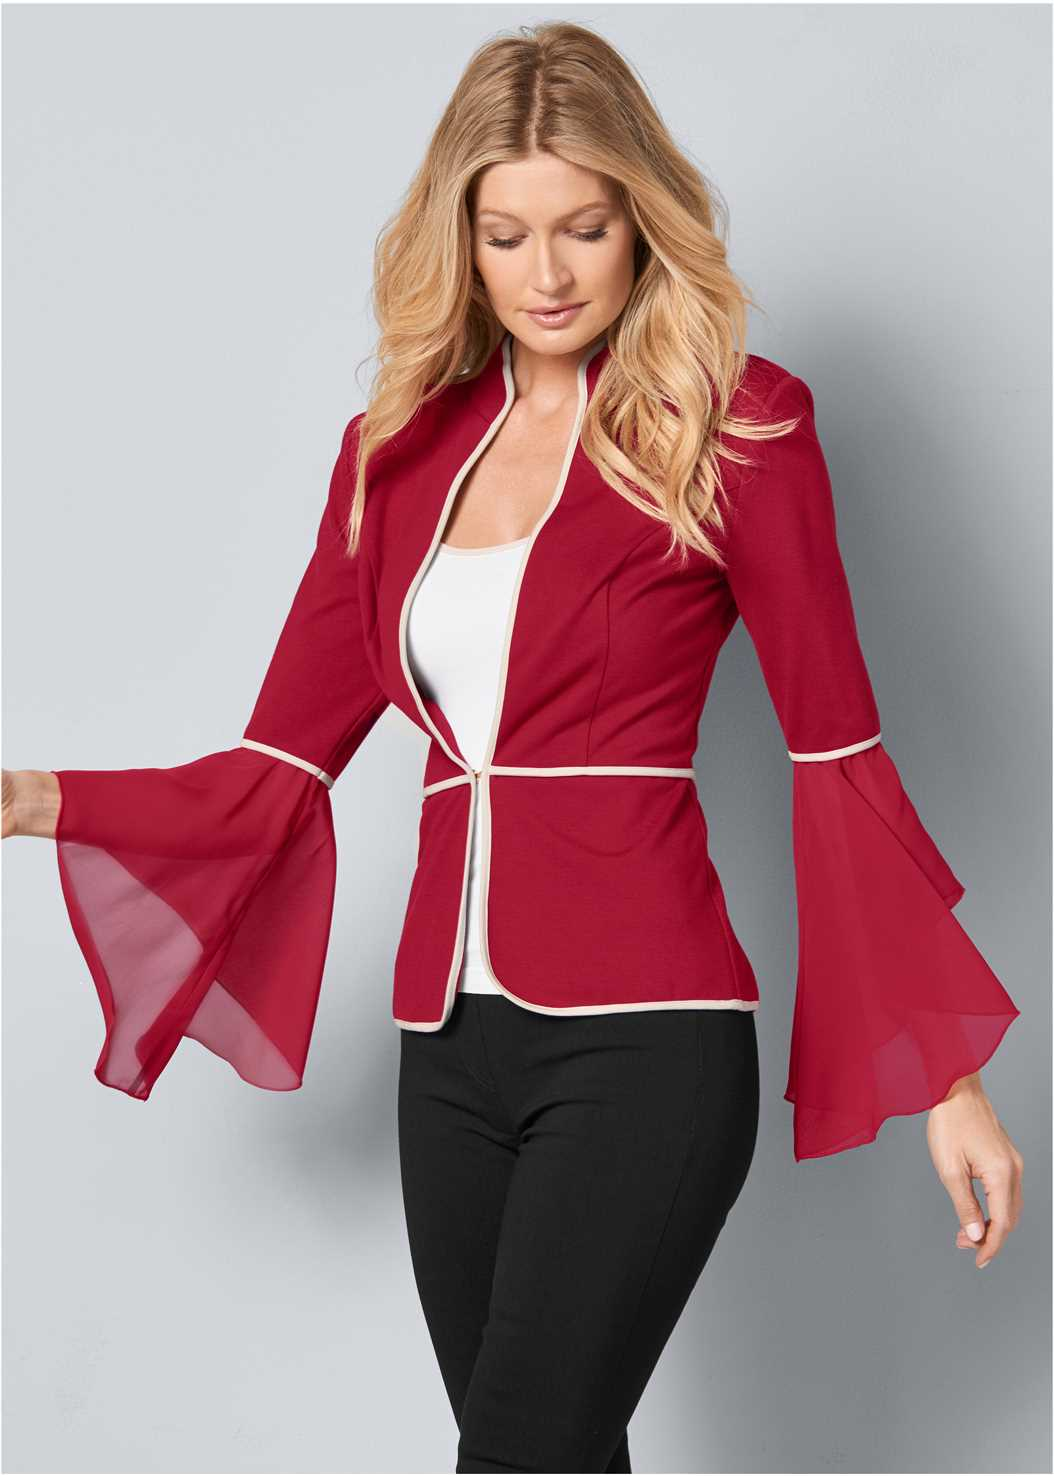 Sleeve Detail Jacket,Basic Cami Two Pack,Mid Rise Slimming Stretch Jeggings,High Heel Strappy Sandals